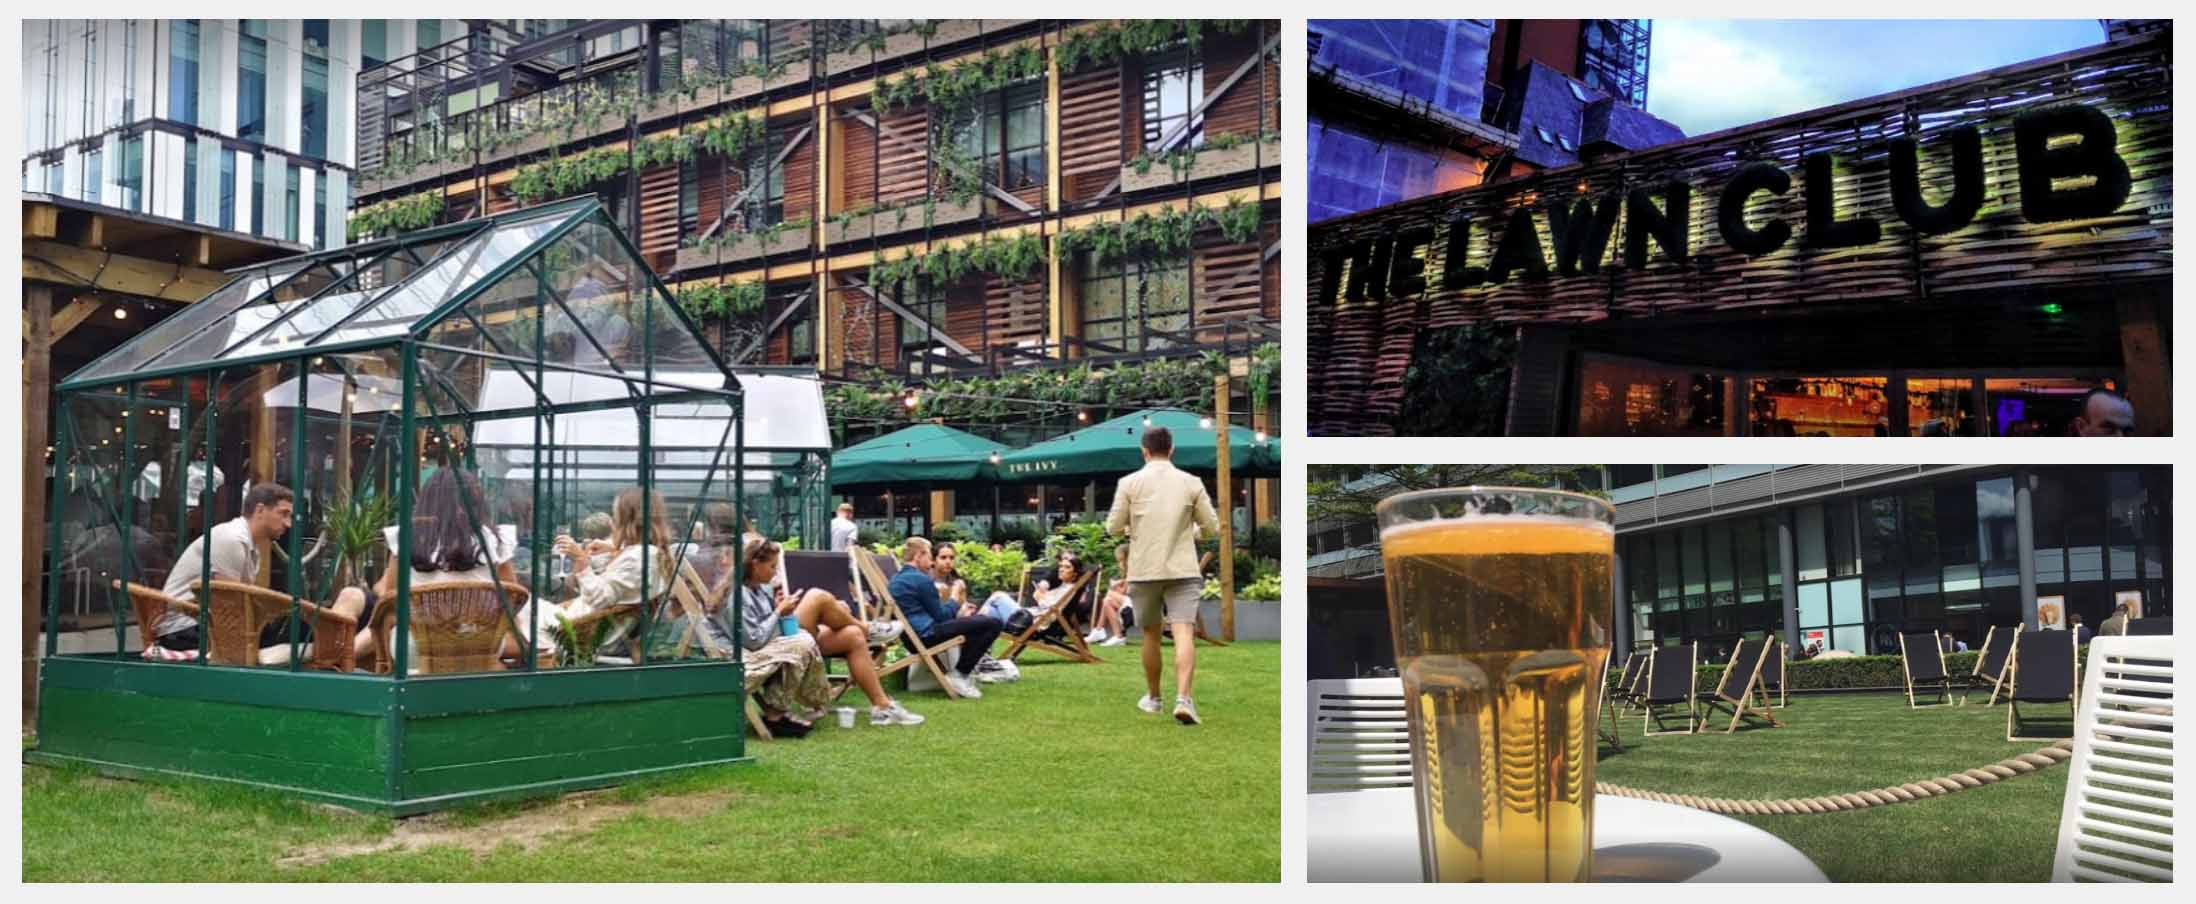 Best Beer Gardens in Manchester - The Lawn Club